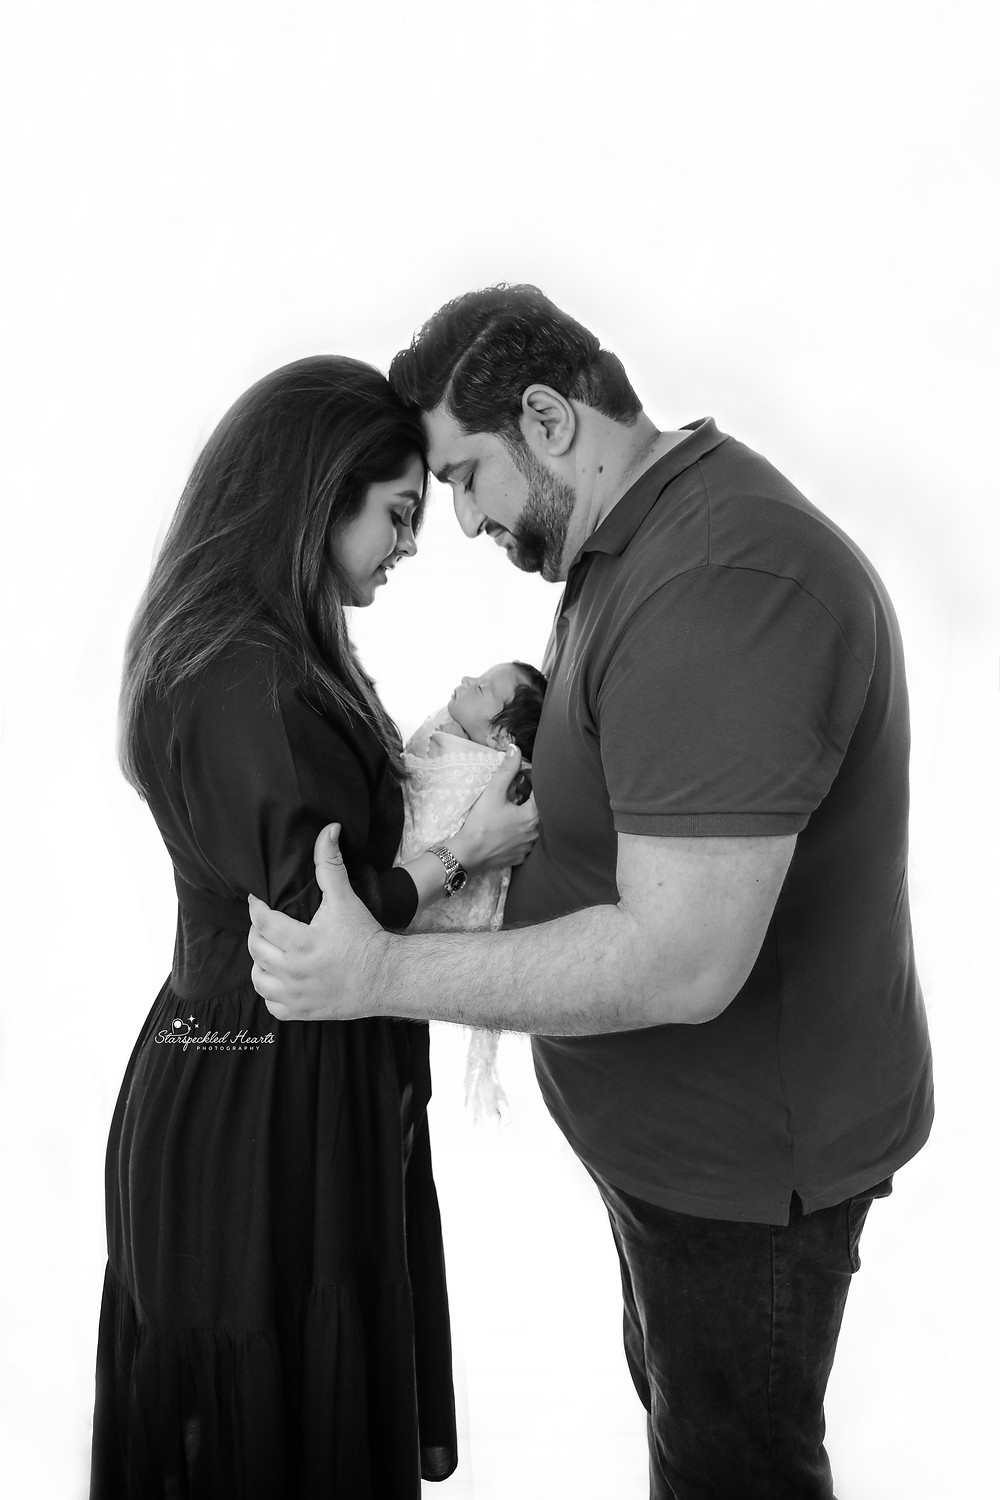 family photo of a man, woman and newborn baby girl